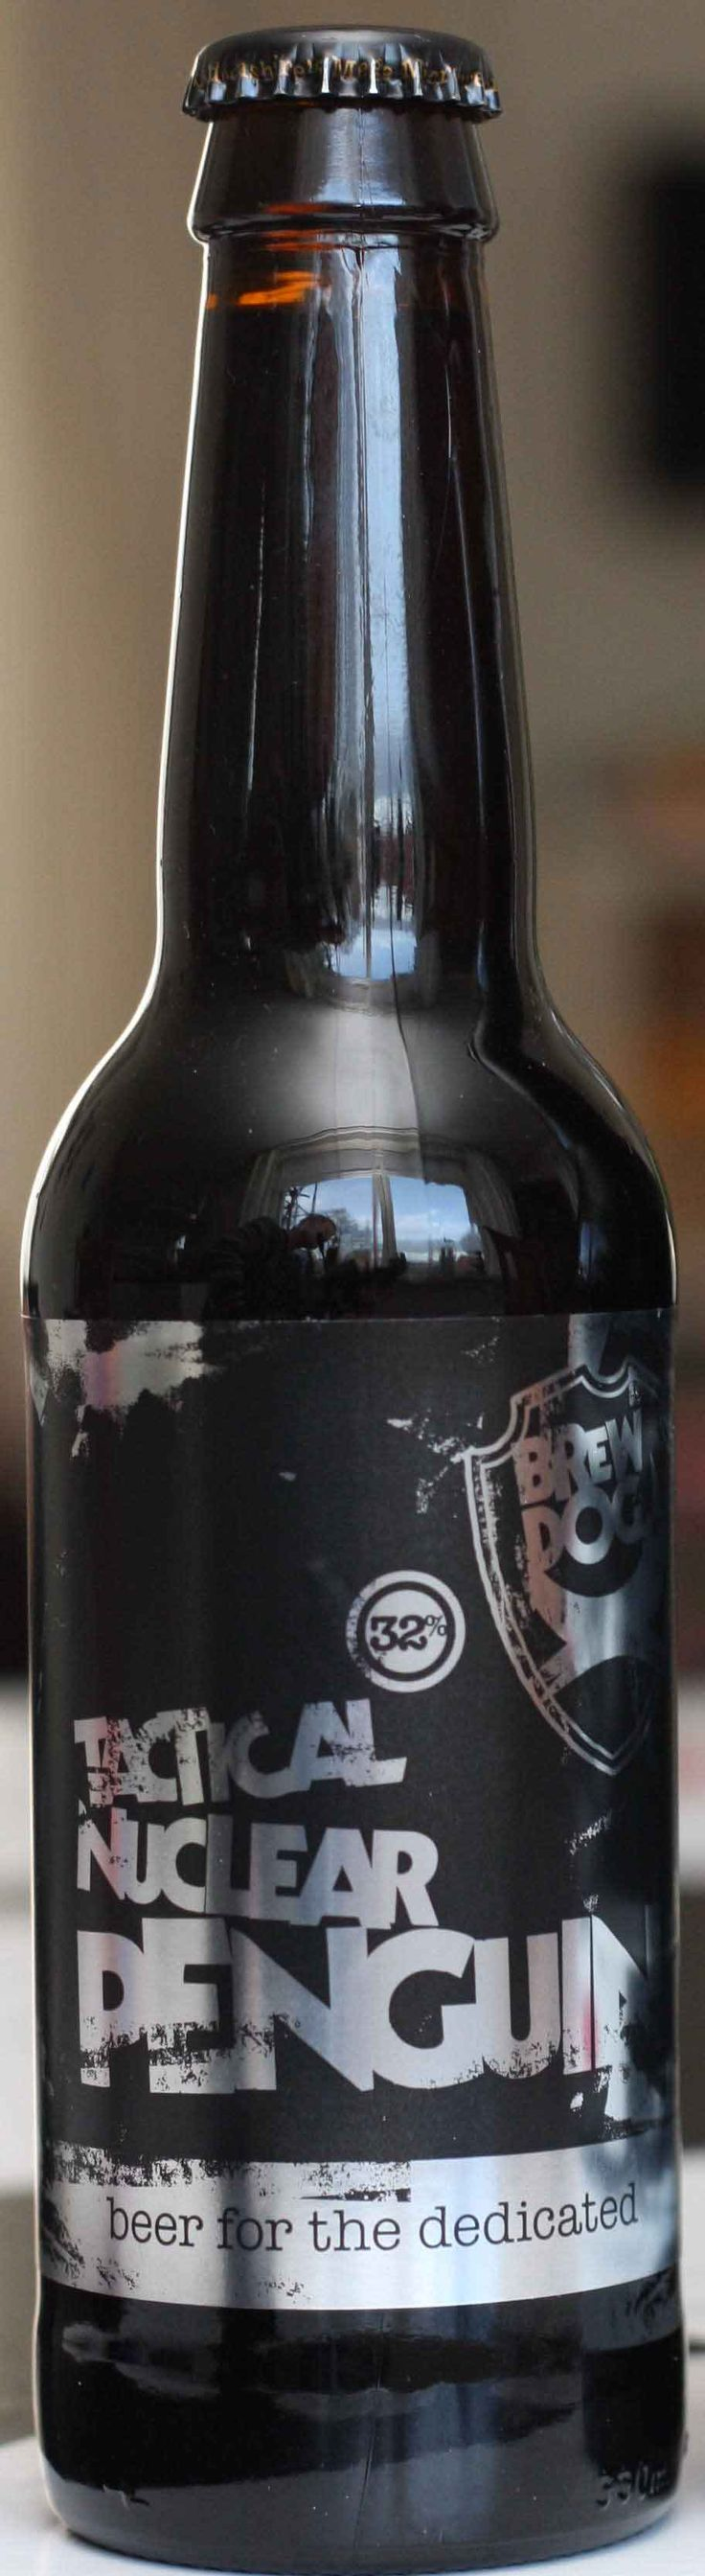 Tactical Nuclear Penguin: One of a new breed of beer with very high alcohol (30% ABV) content achieved by freezing along with impressive price. Is more better?